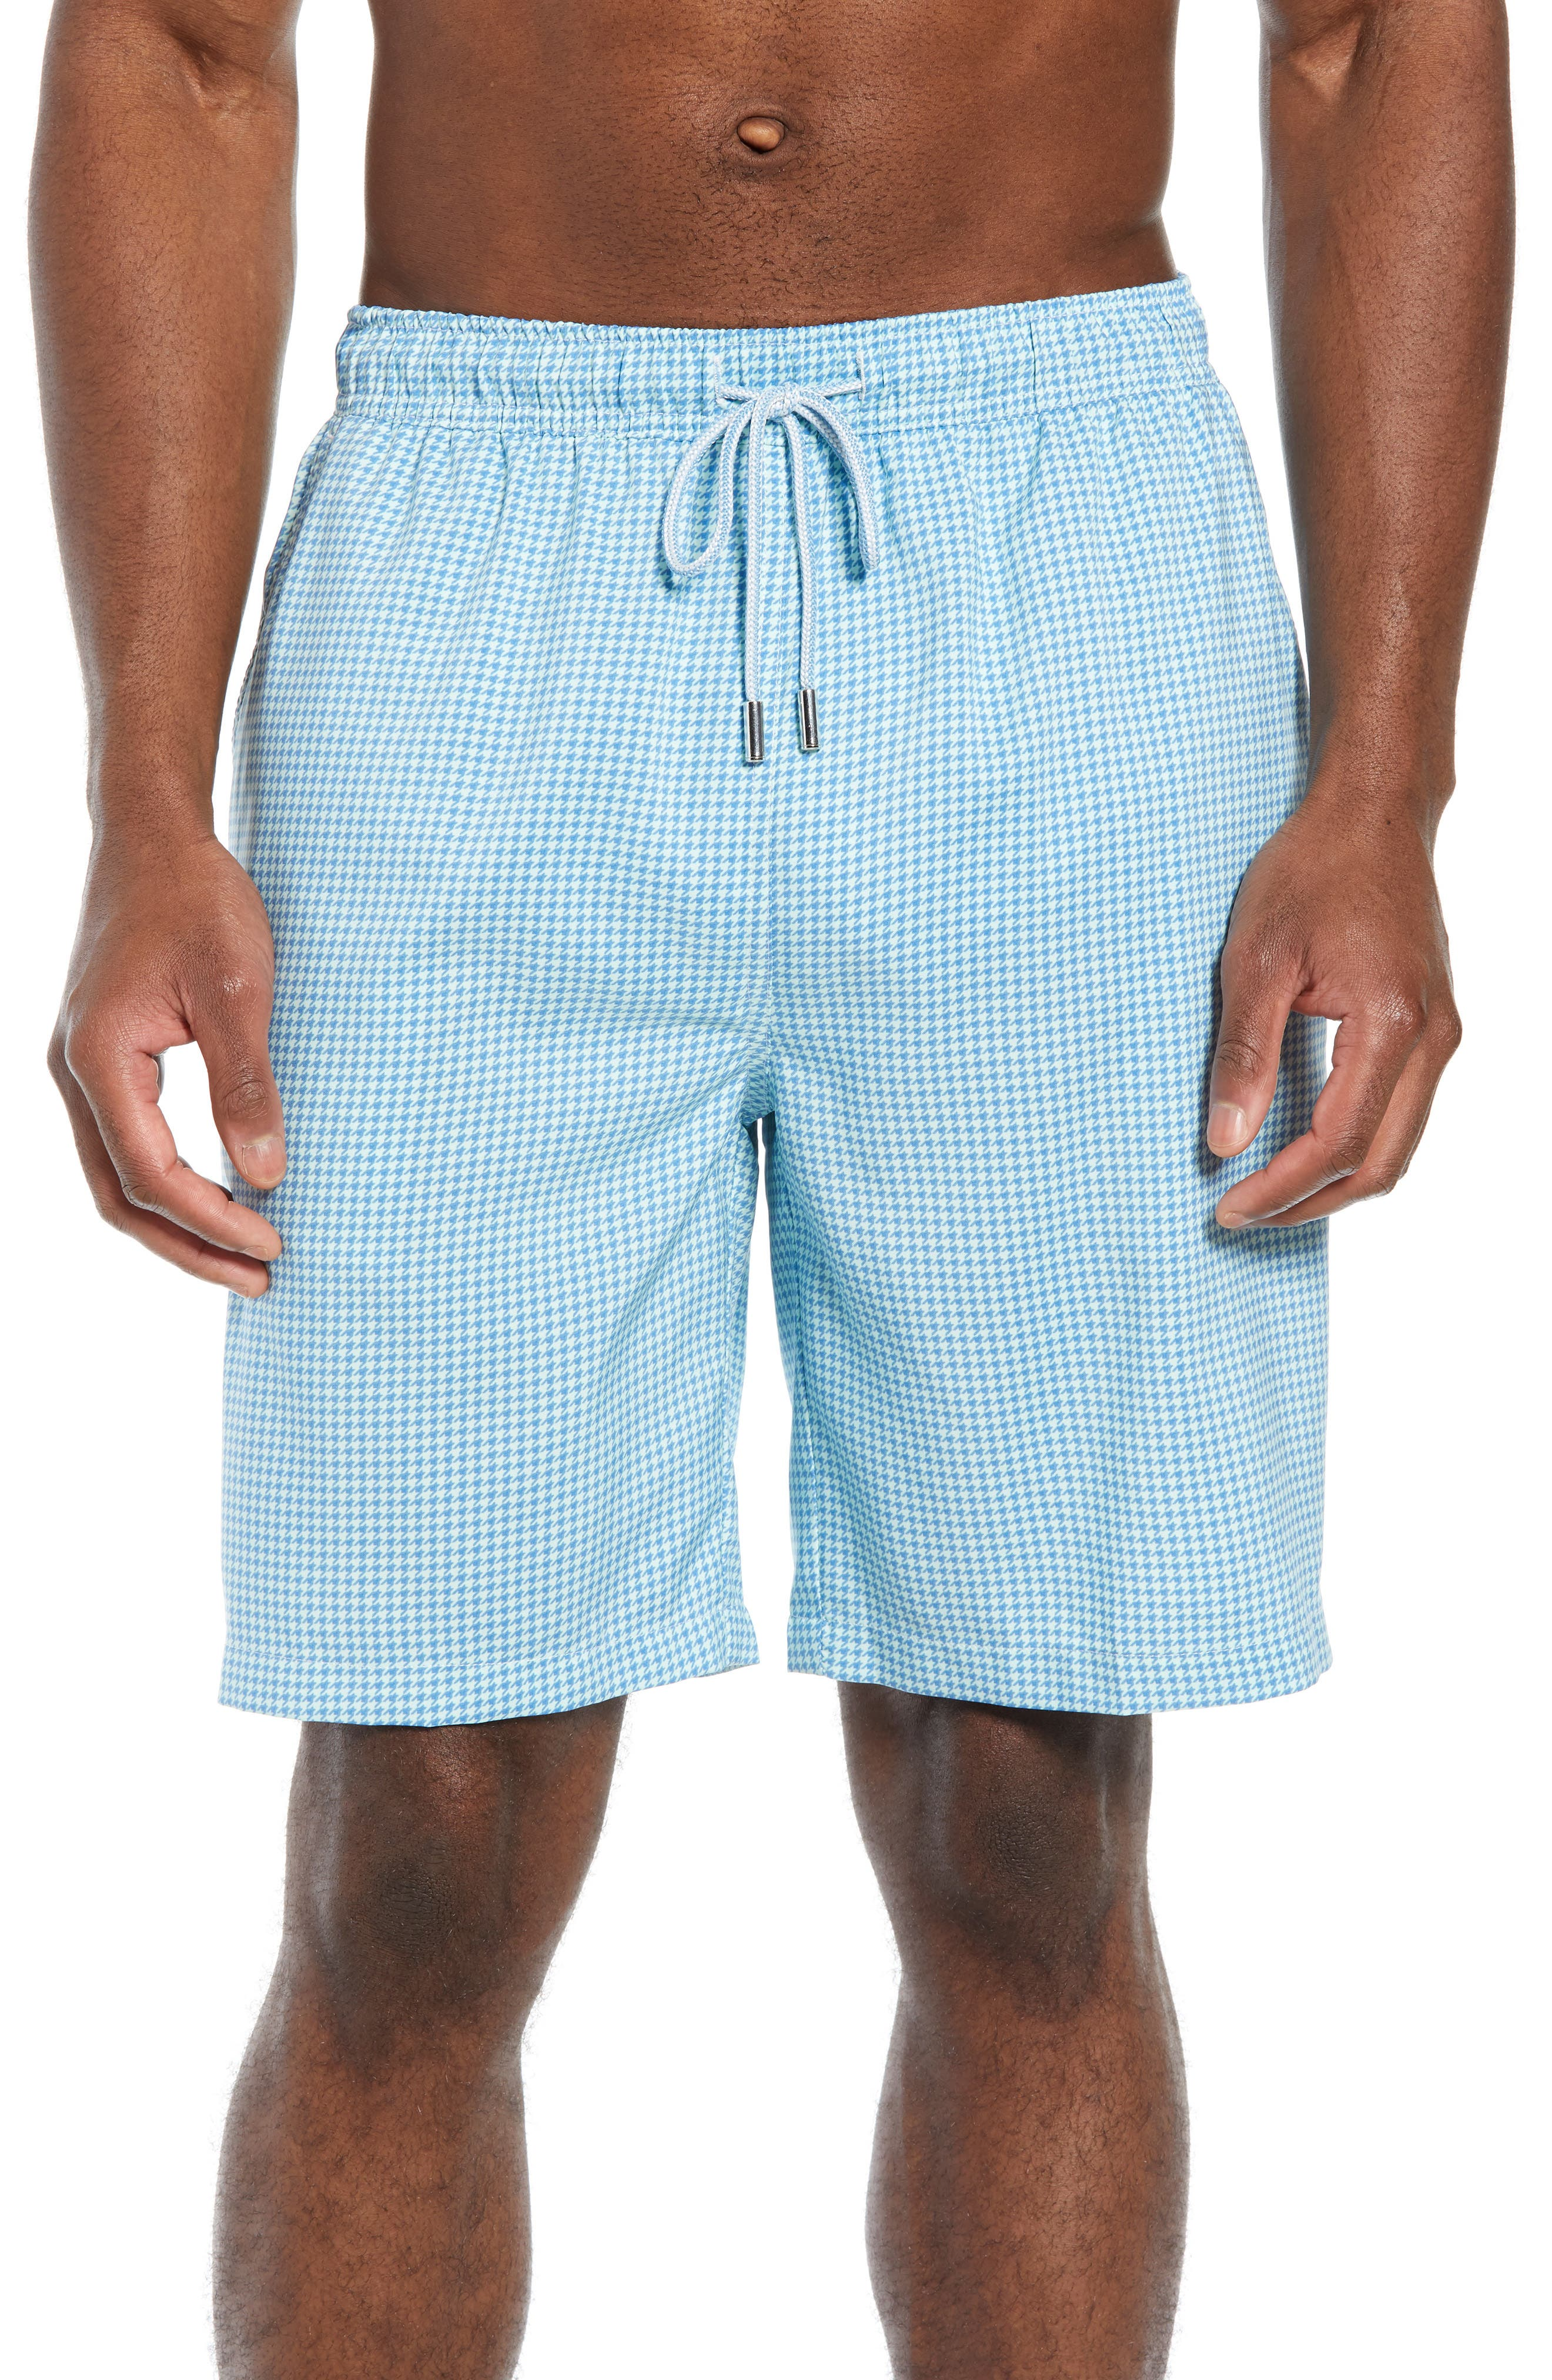 Peter Millar Sea Glass Houndstooth Swim Trunks, Blue